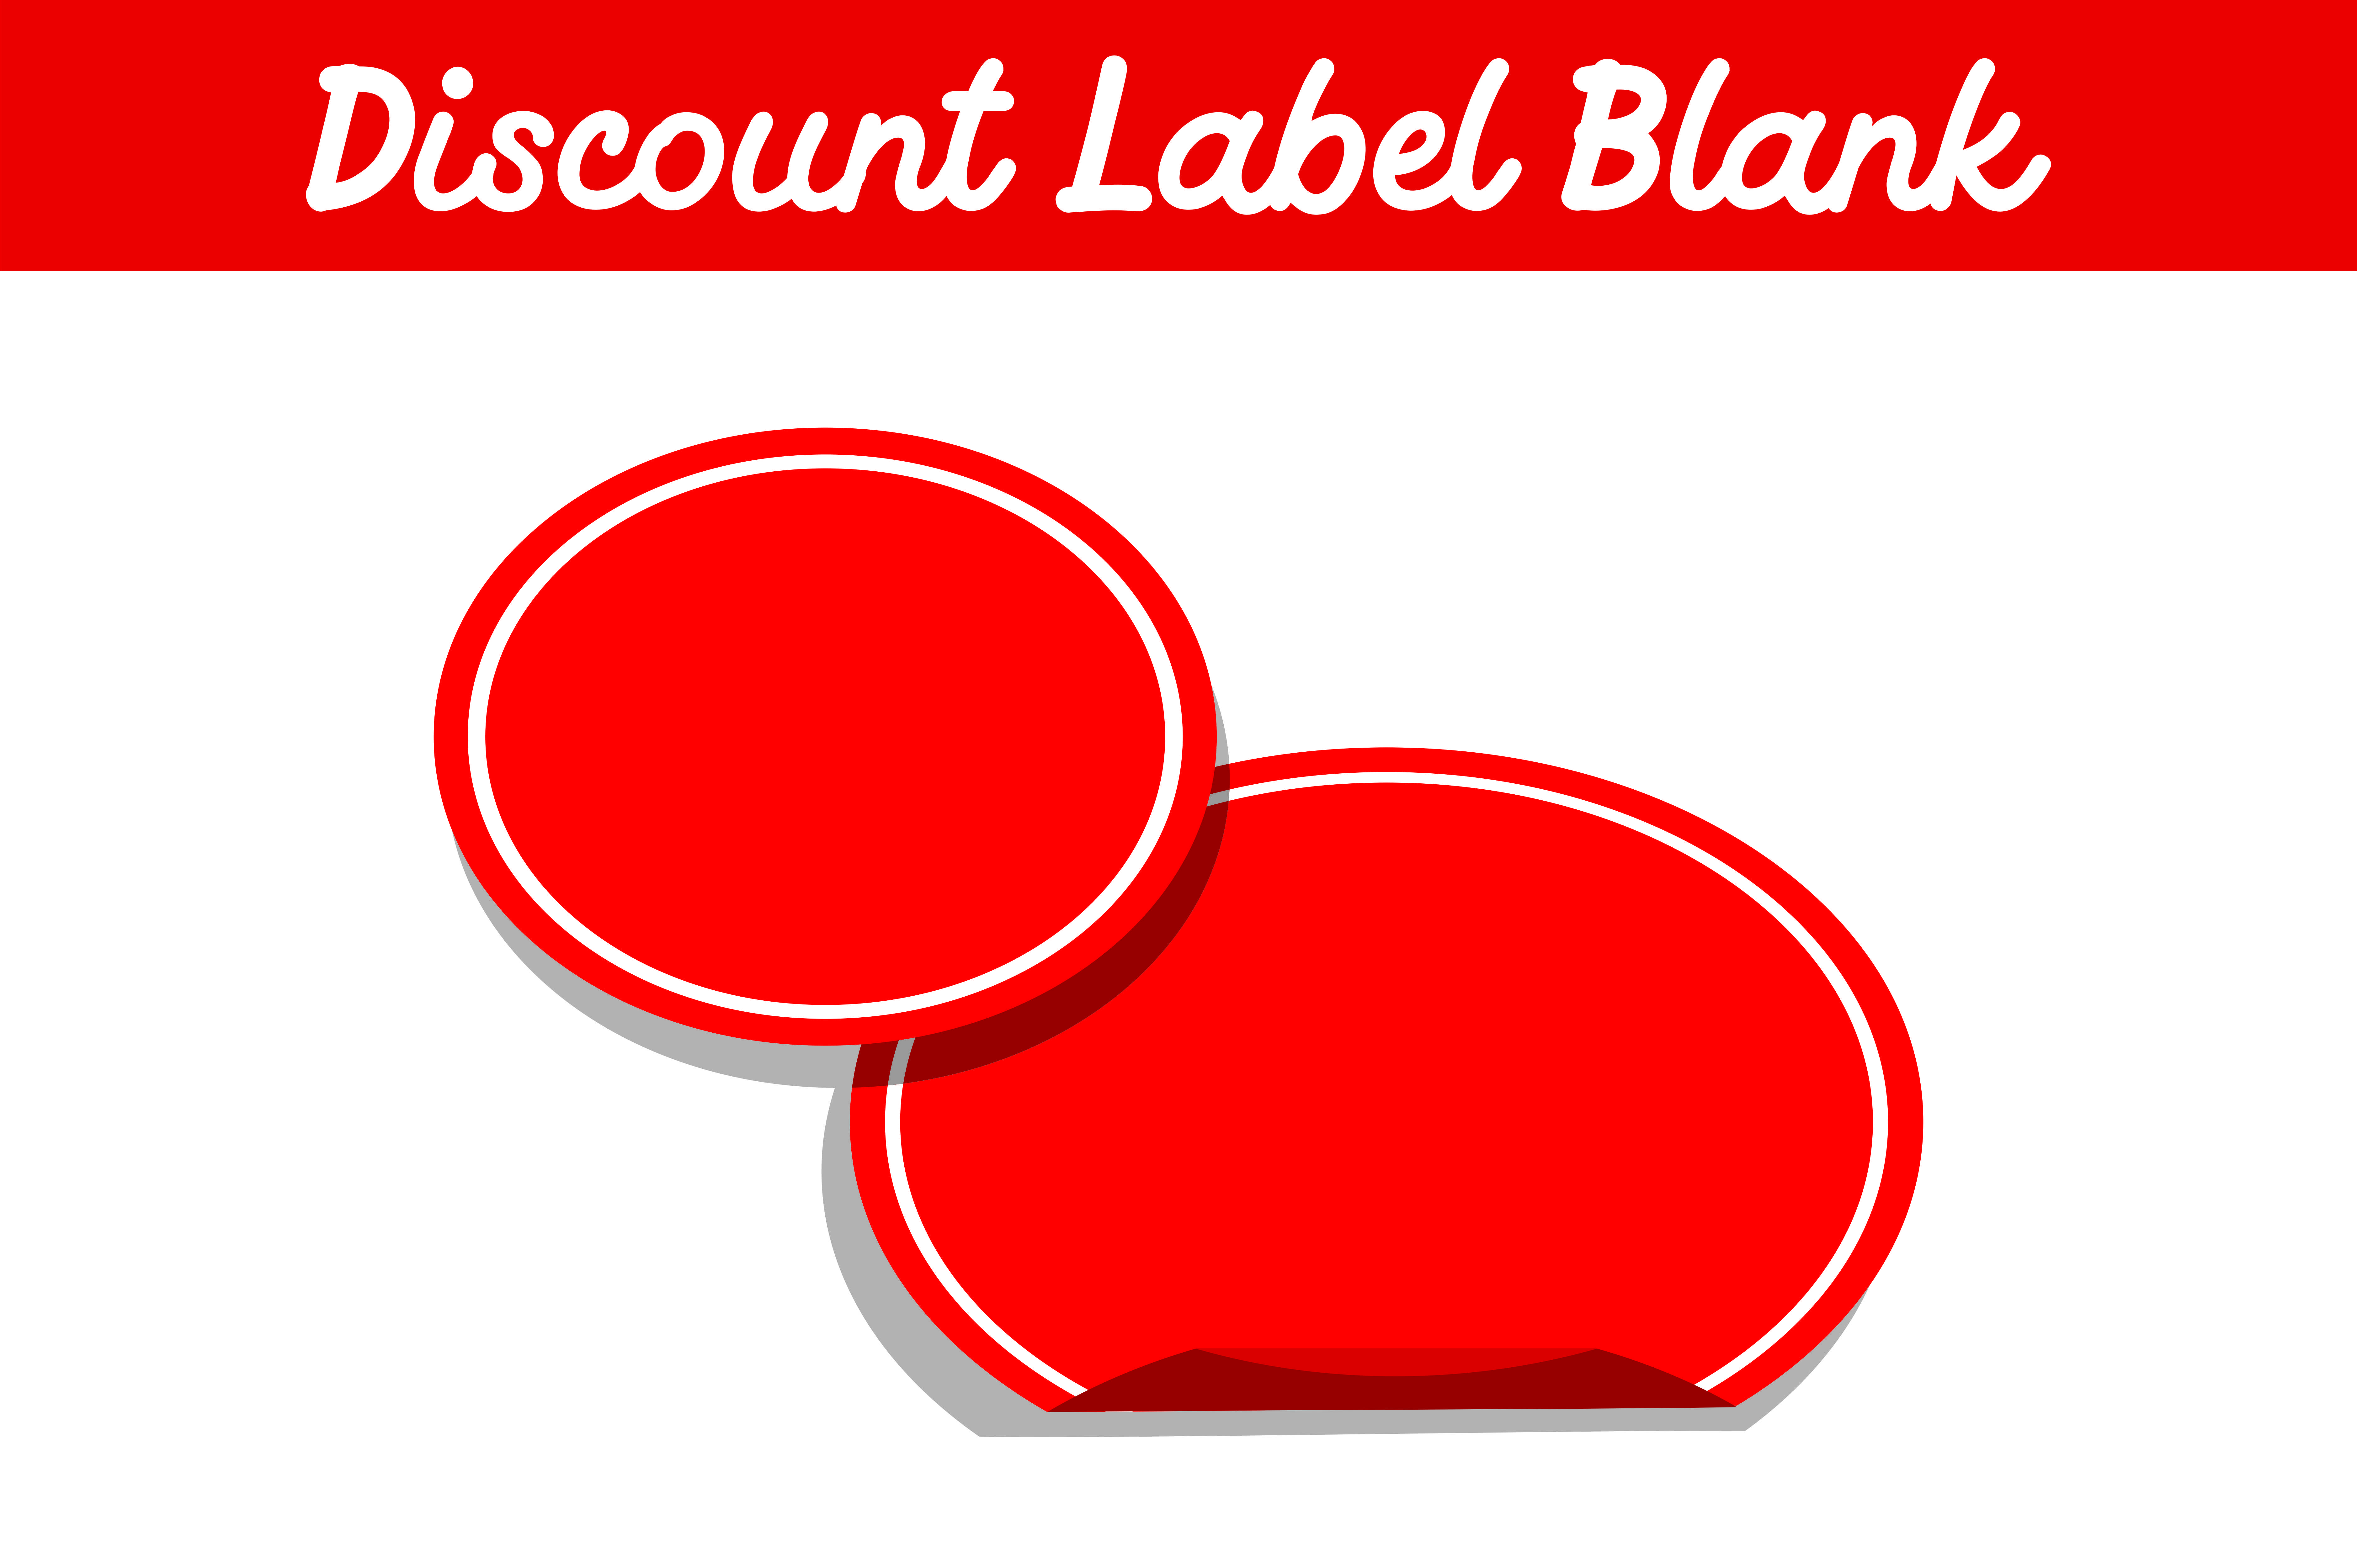 Download Free Label Discount Blank Graphic By Arief Sapta Adjie Creative Fabrica for Cricut Explore, Silhouette and other cutting machines.